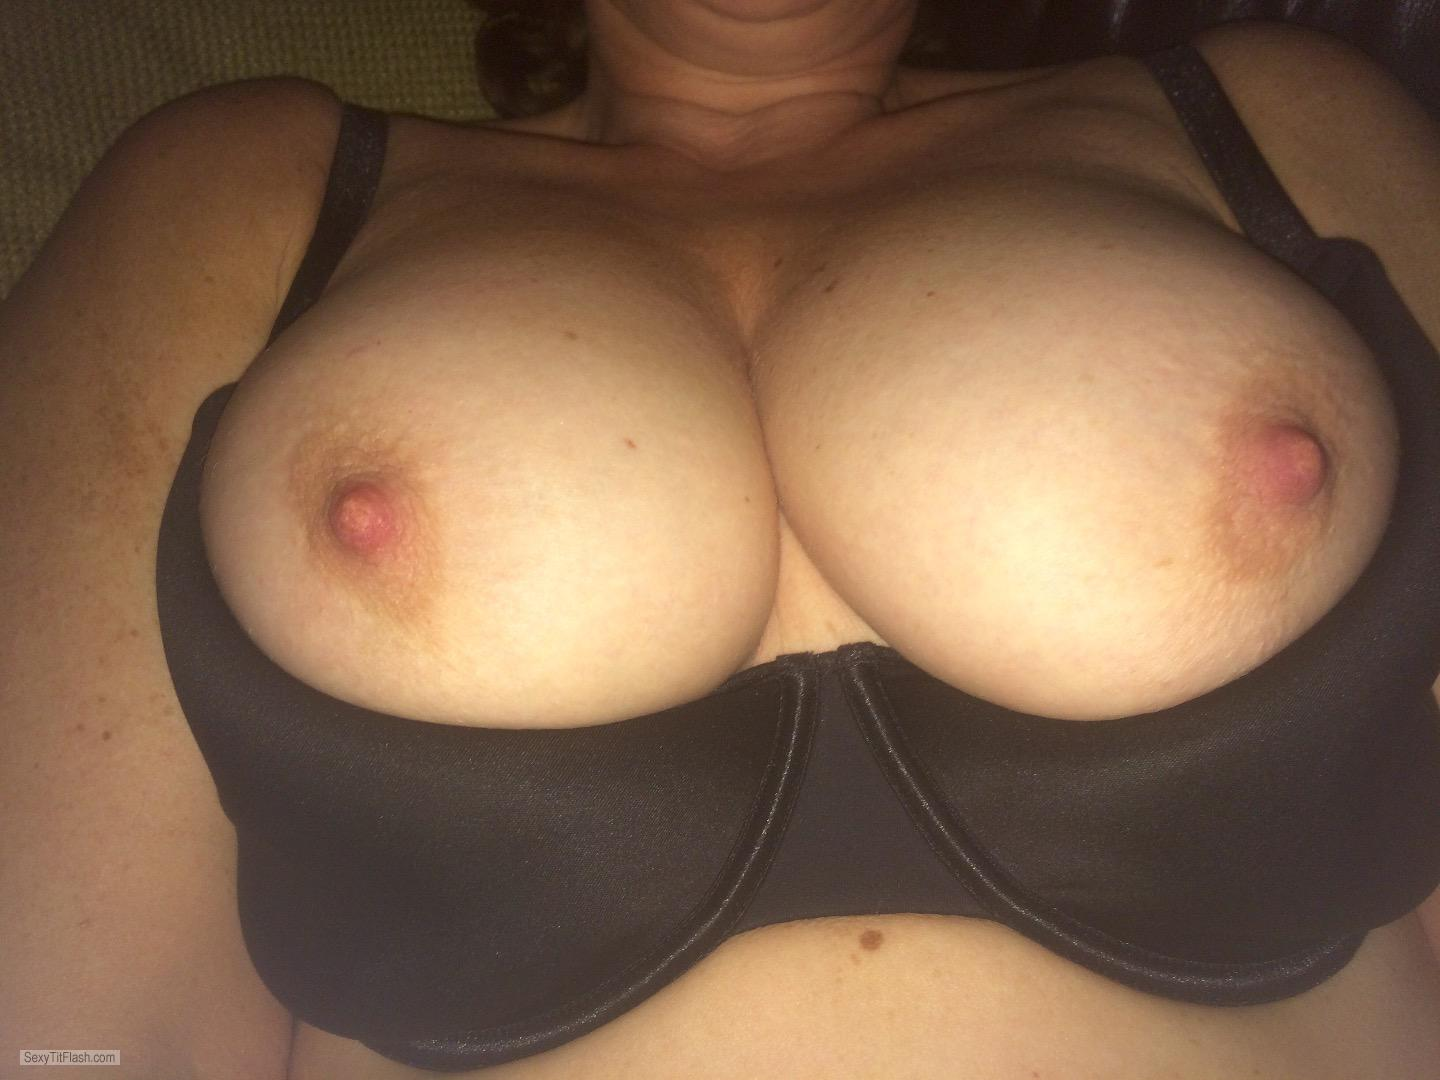 Tit Flash: My Tanlined Big Tits - Kik Afternoondelight1974 from CanadaPierced Nipples